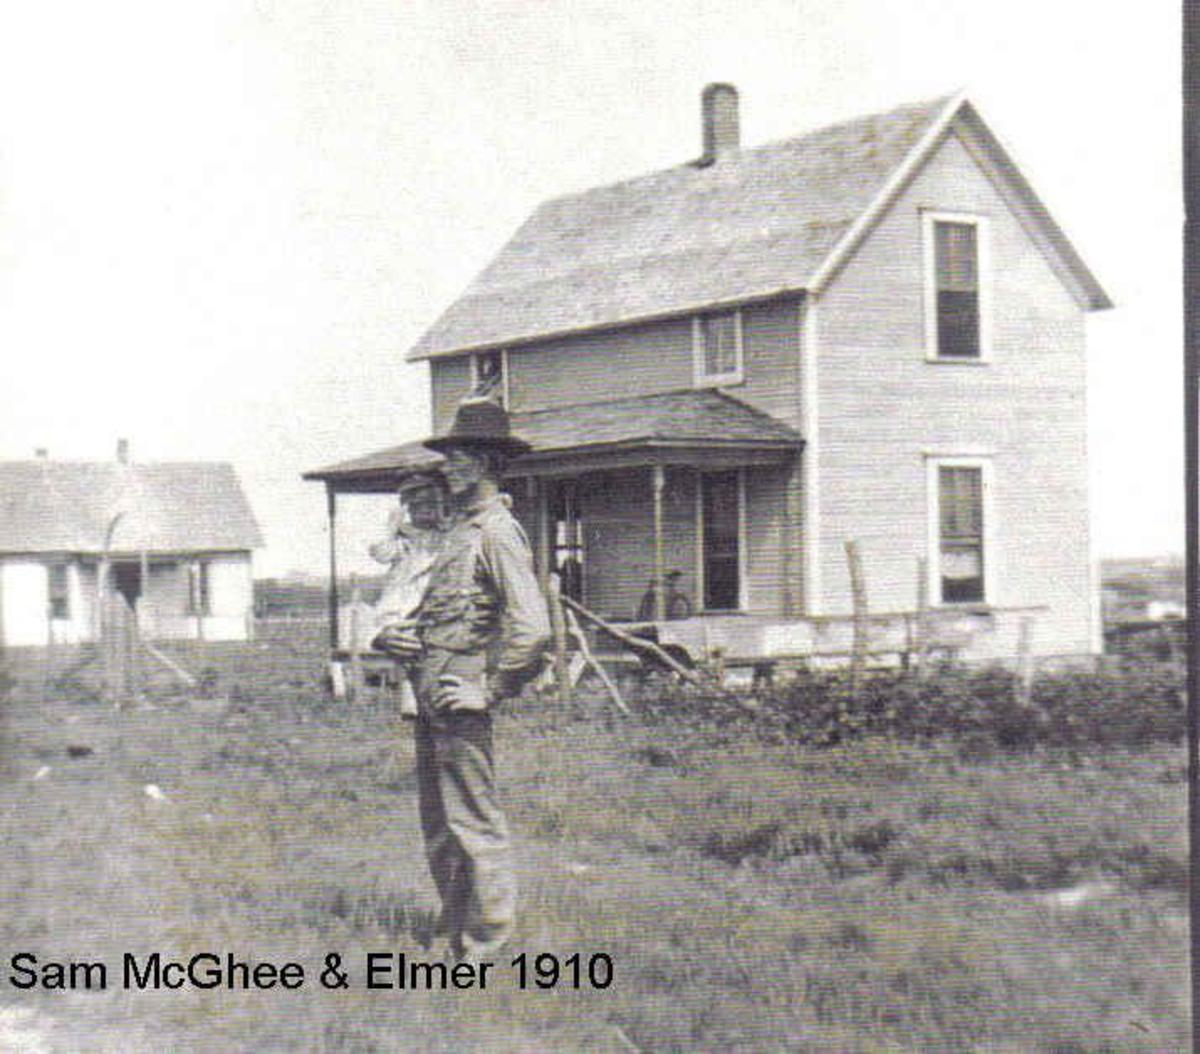 Bertha's father and brother, Sam and Elmer McGhee with their home in the background.